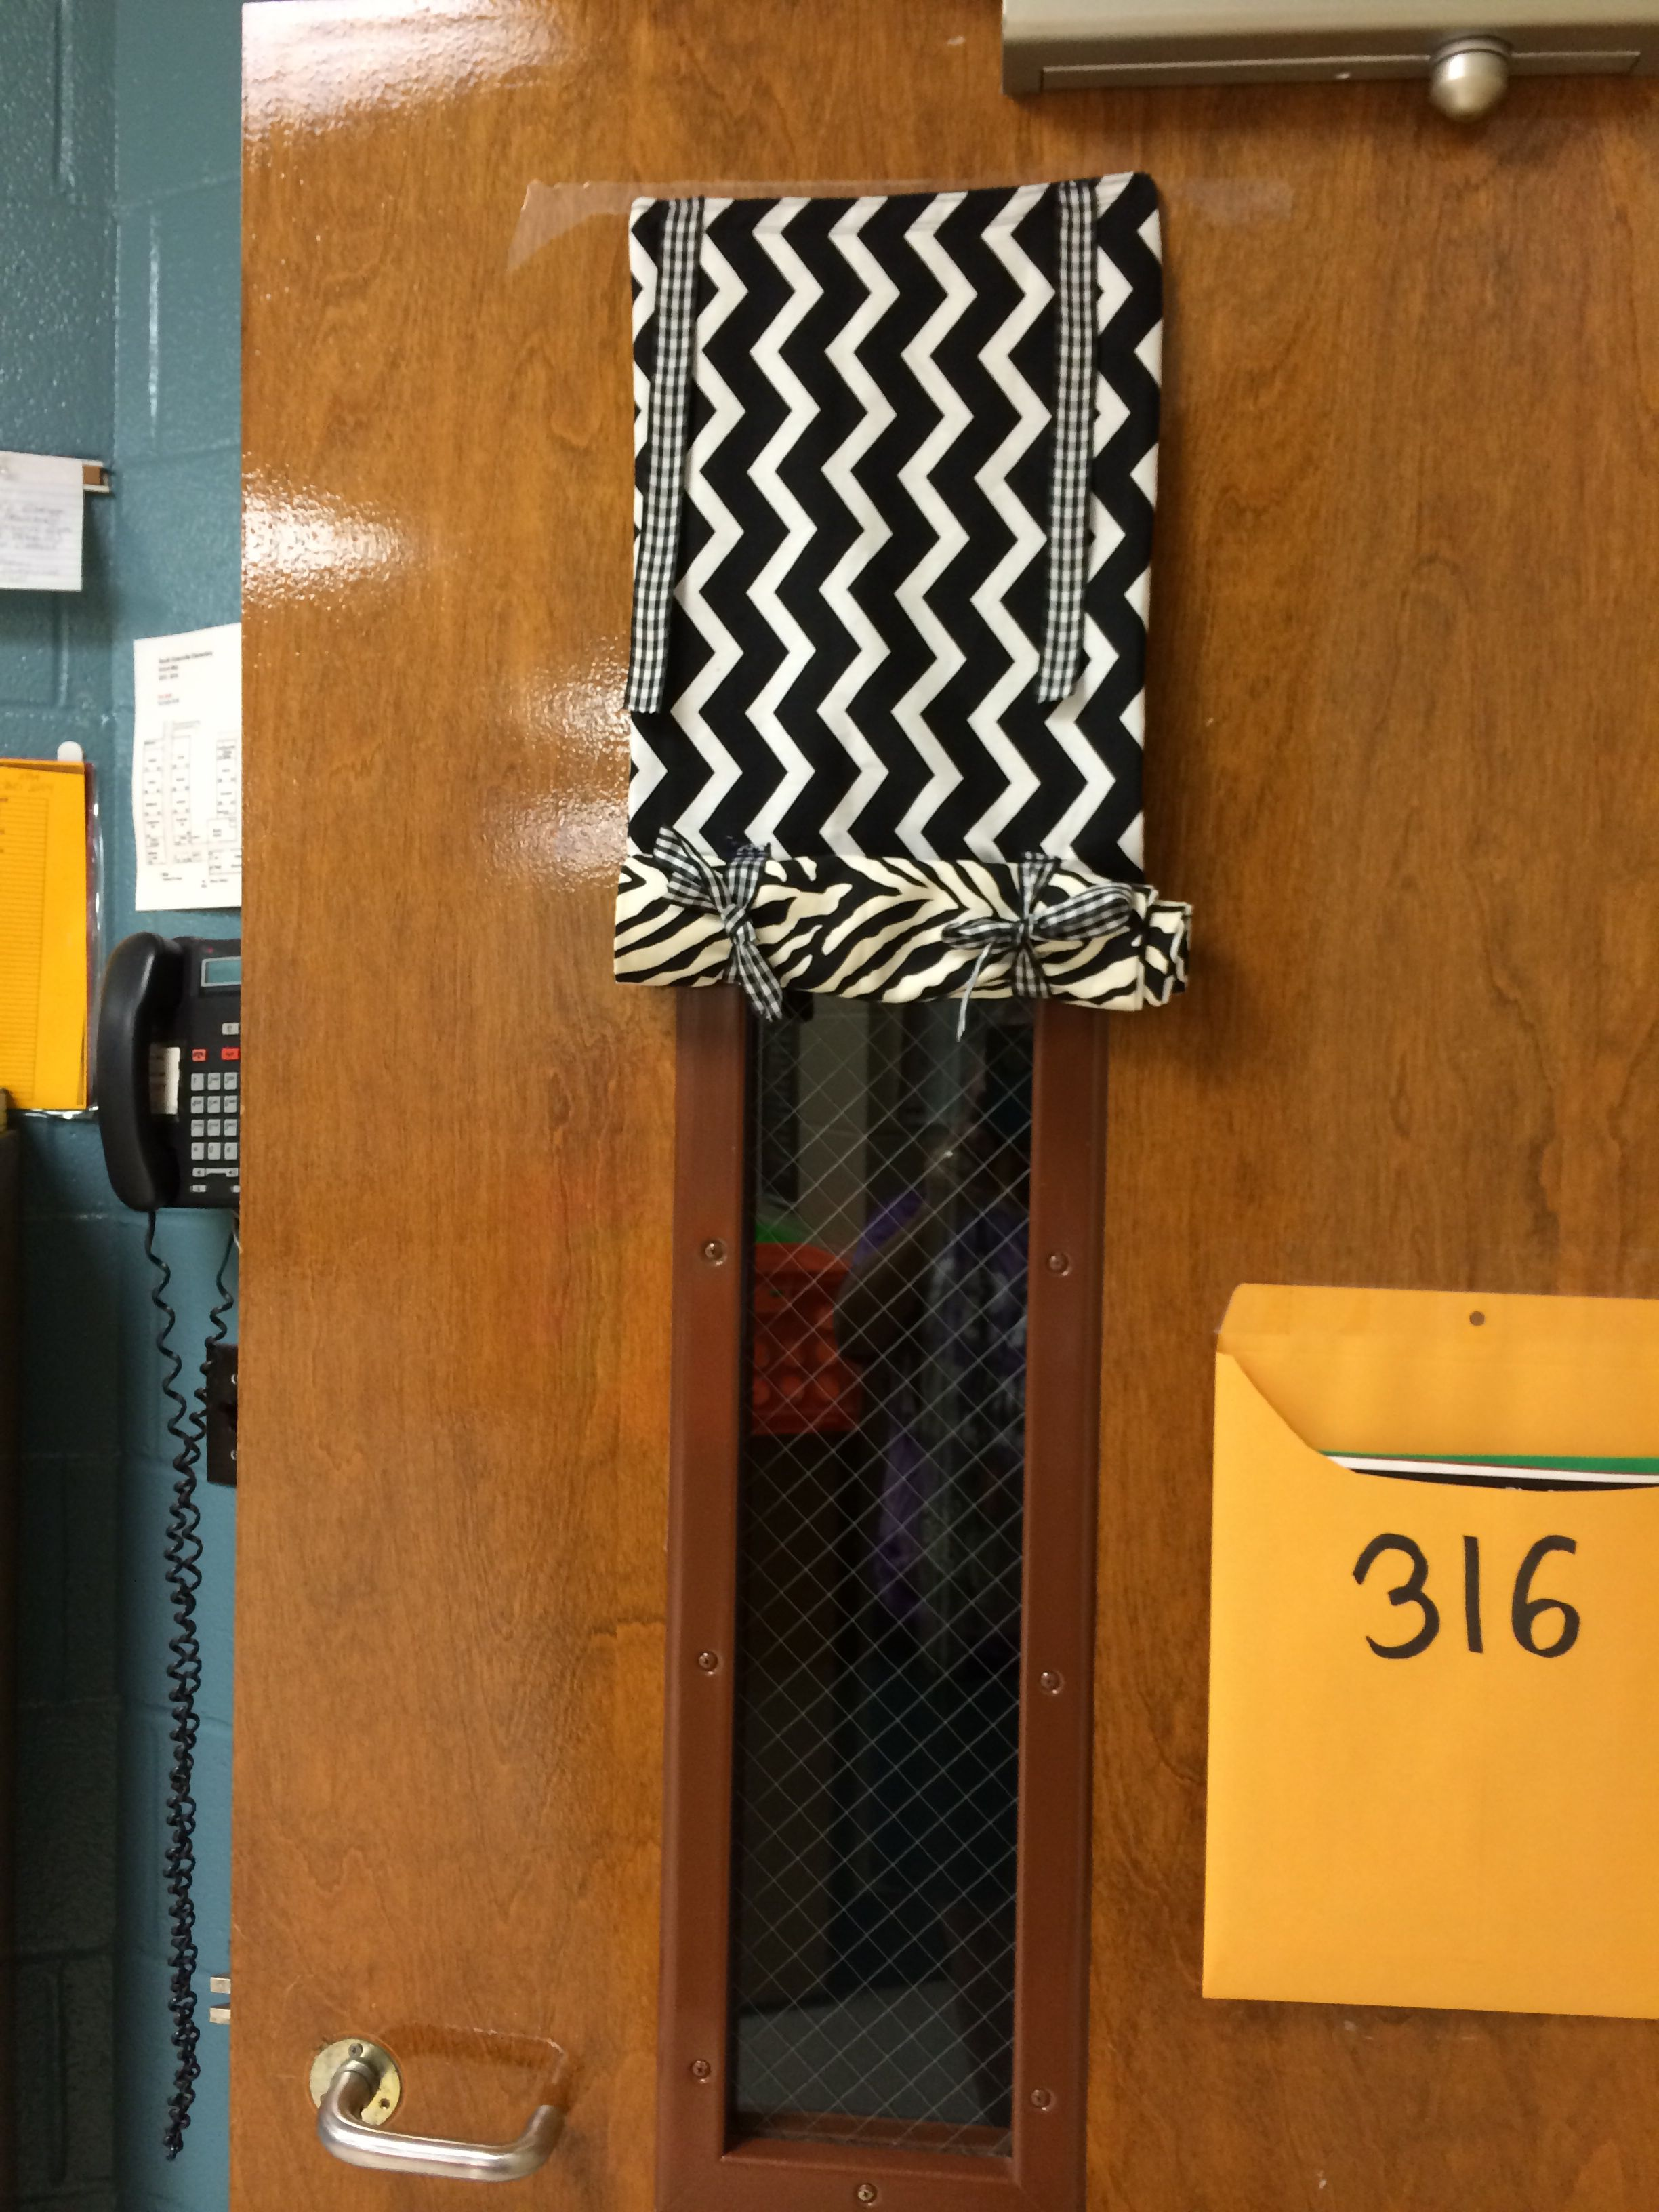 Classroom Door Curtain For Lock Down Drills Classroom